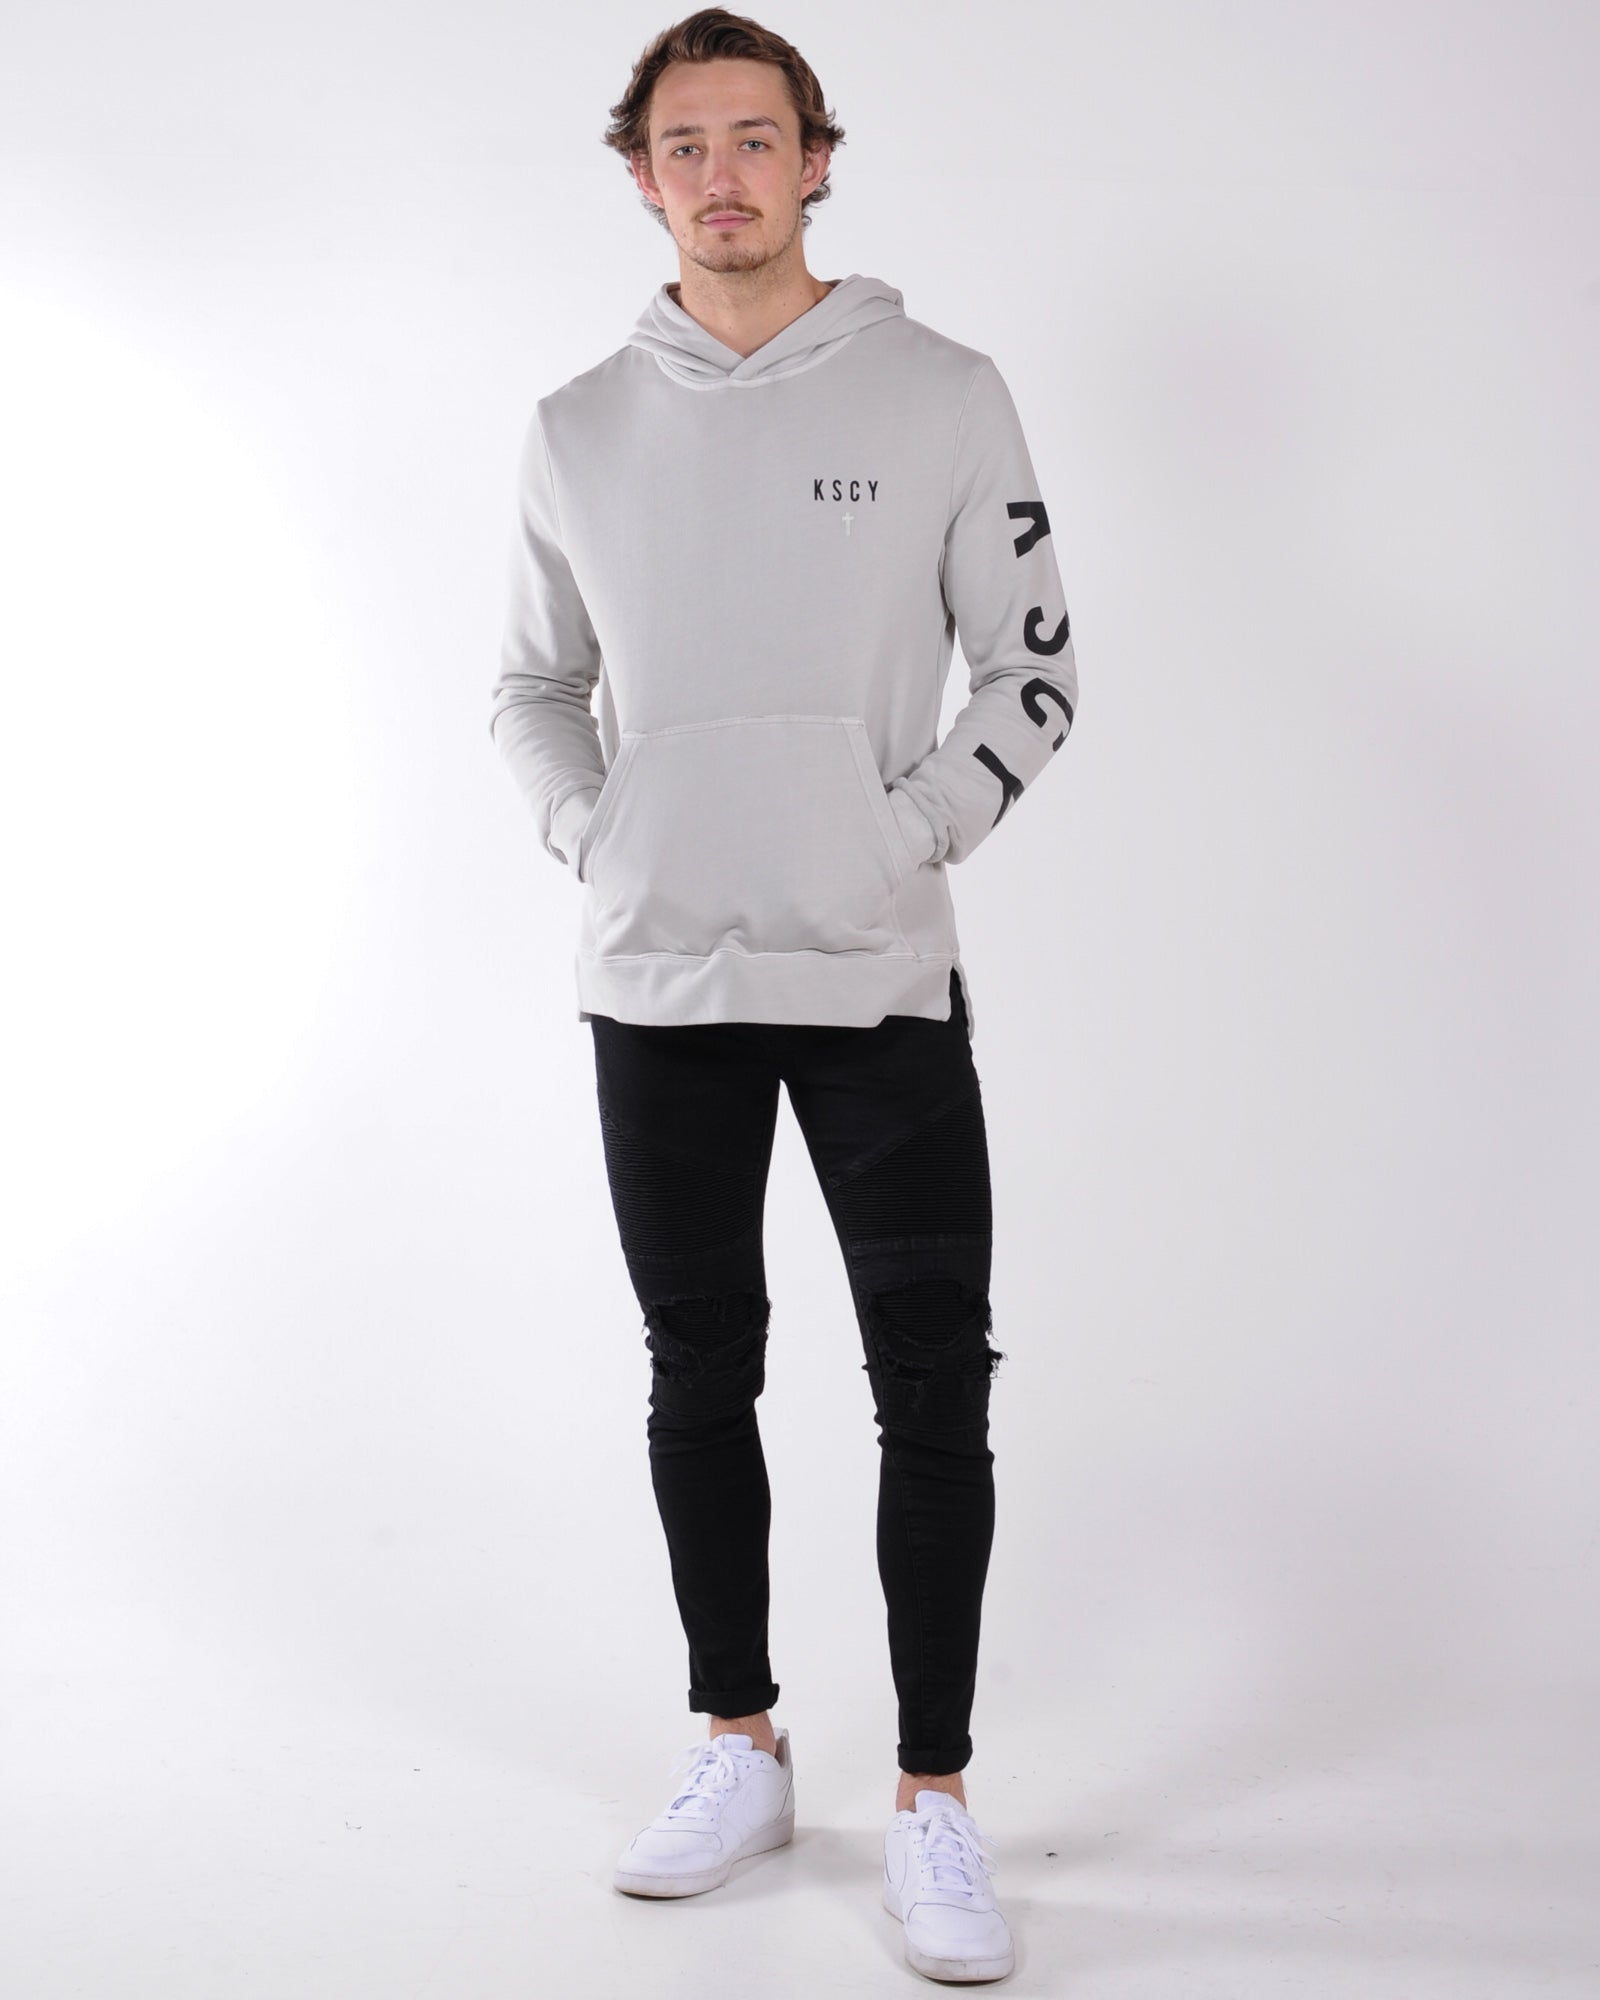 Kiss Chacey Down Town Step Hem Hooded Sweater - Pigment Stone